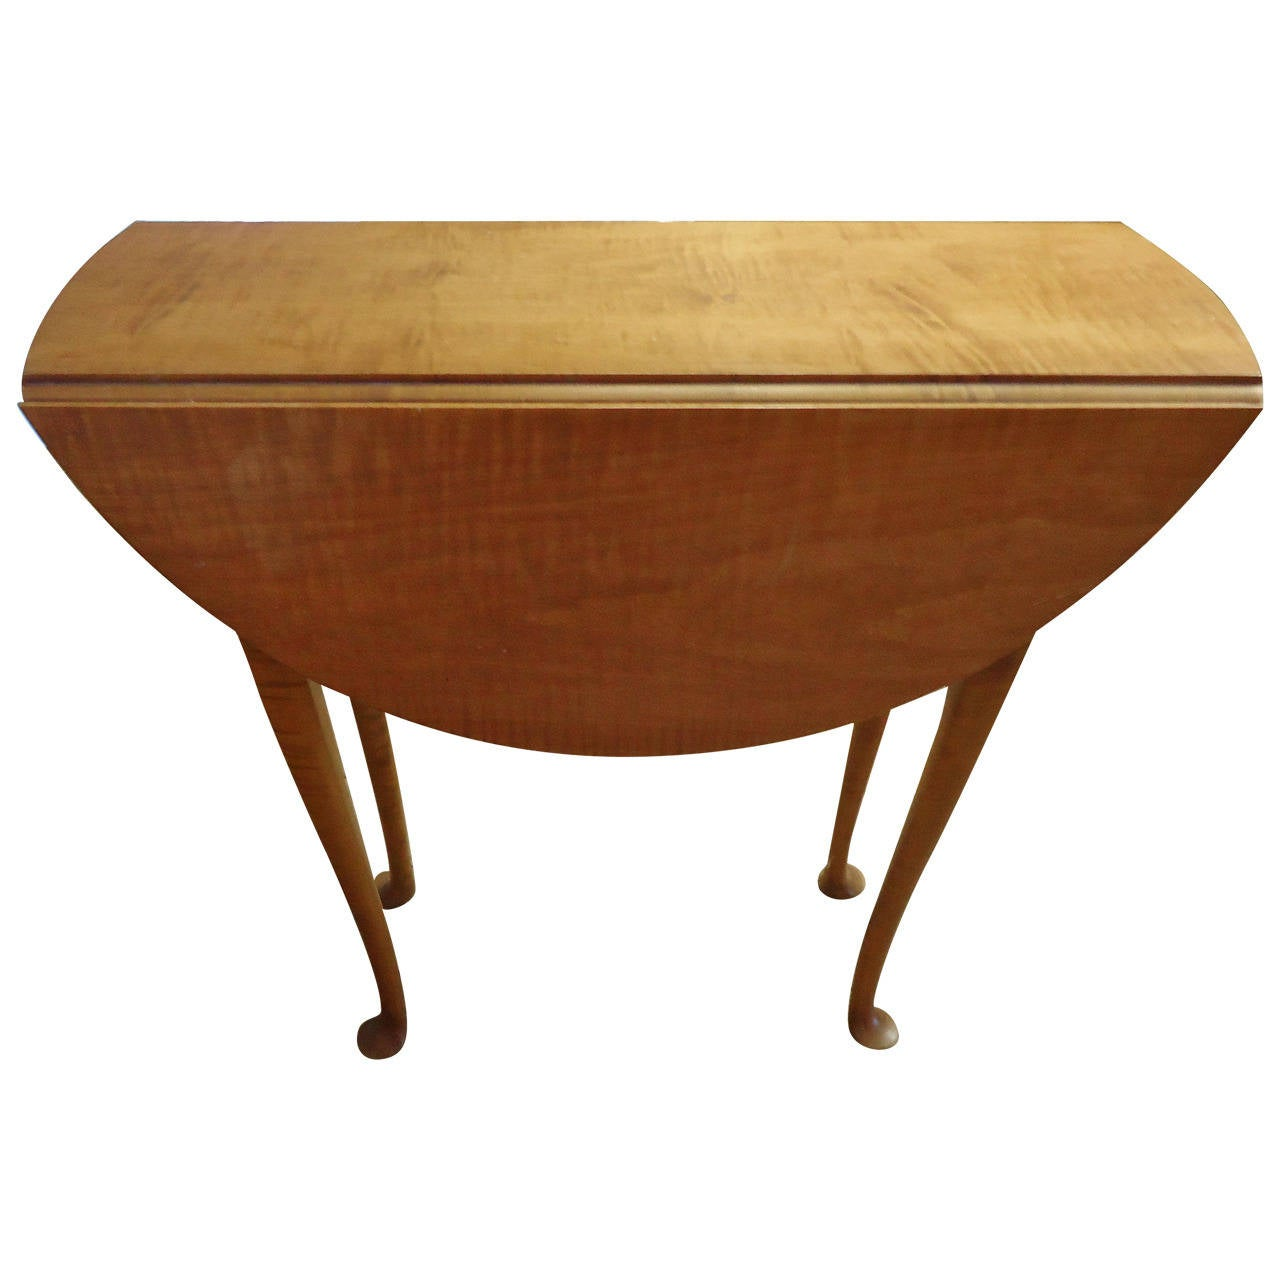 Tiger maple little gateleg table at 1stdibs - Gateleg table with chairs ...